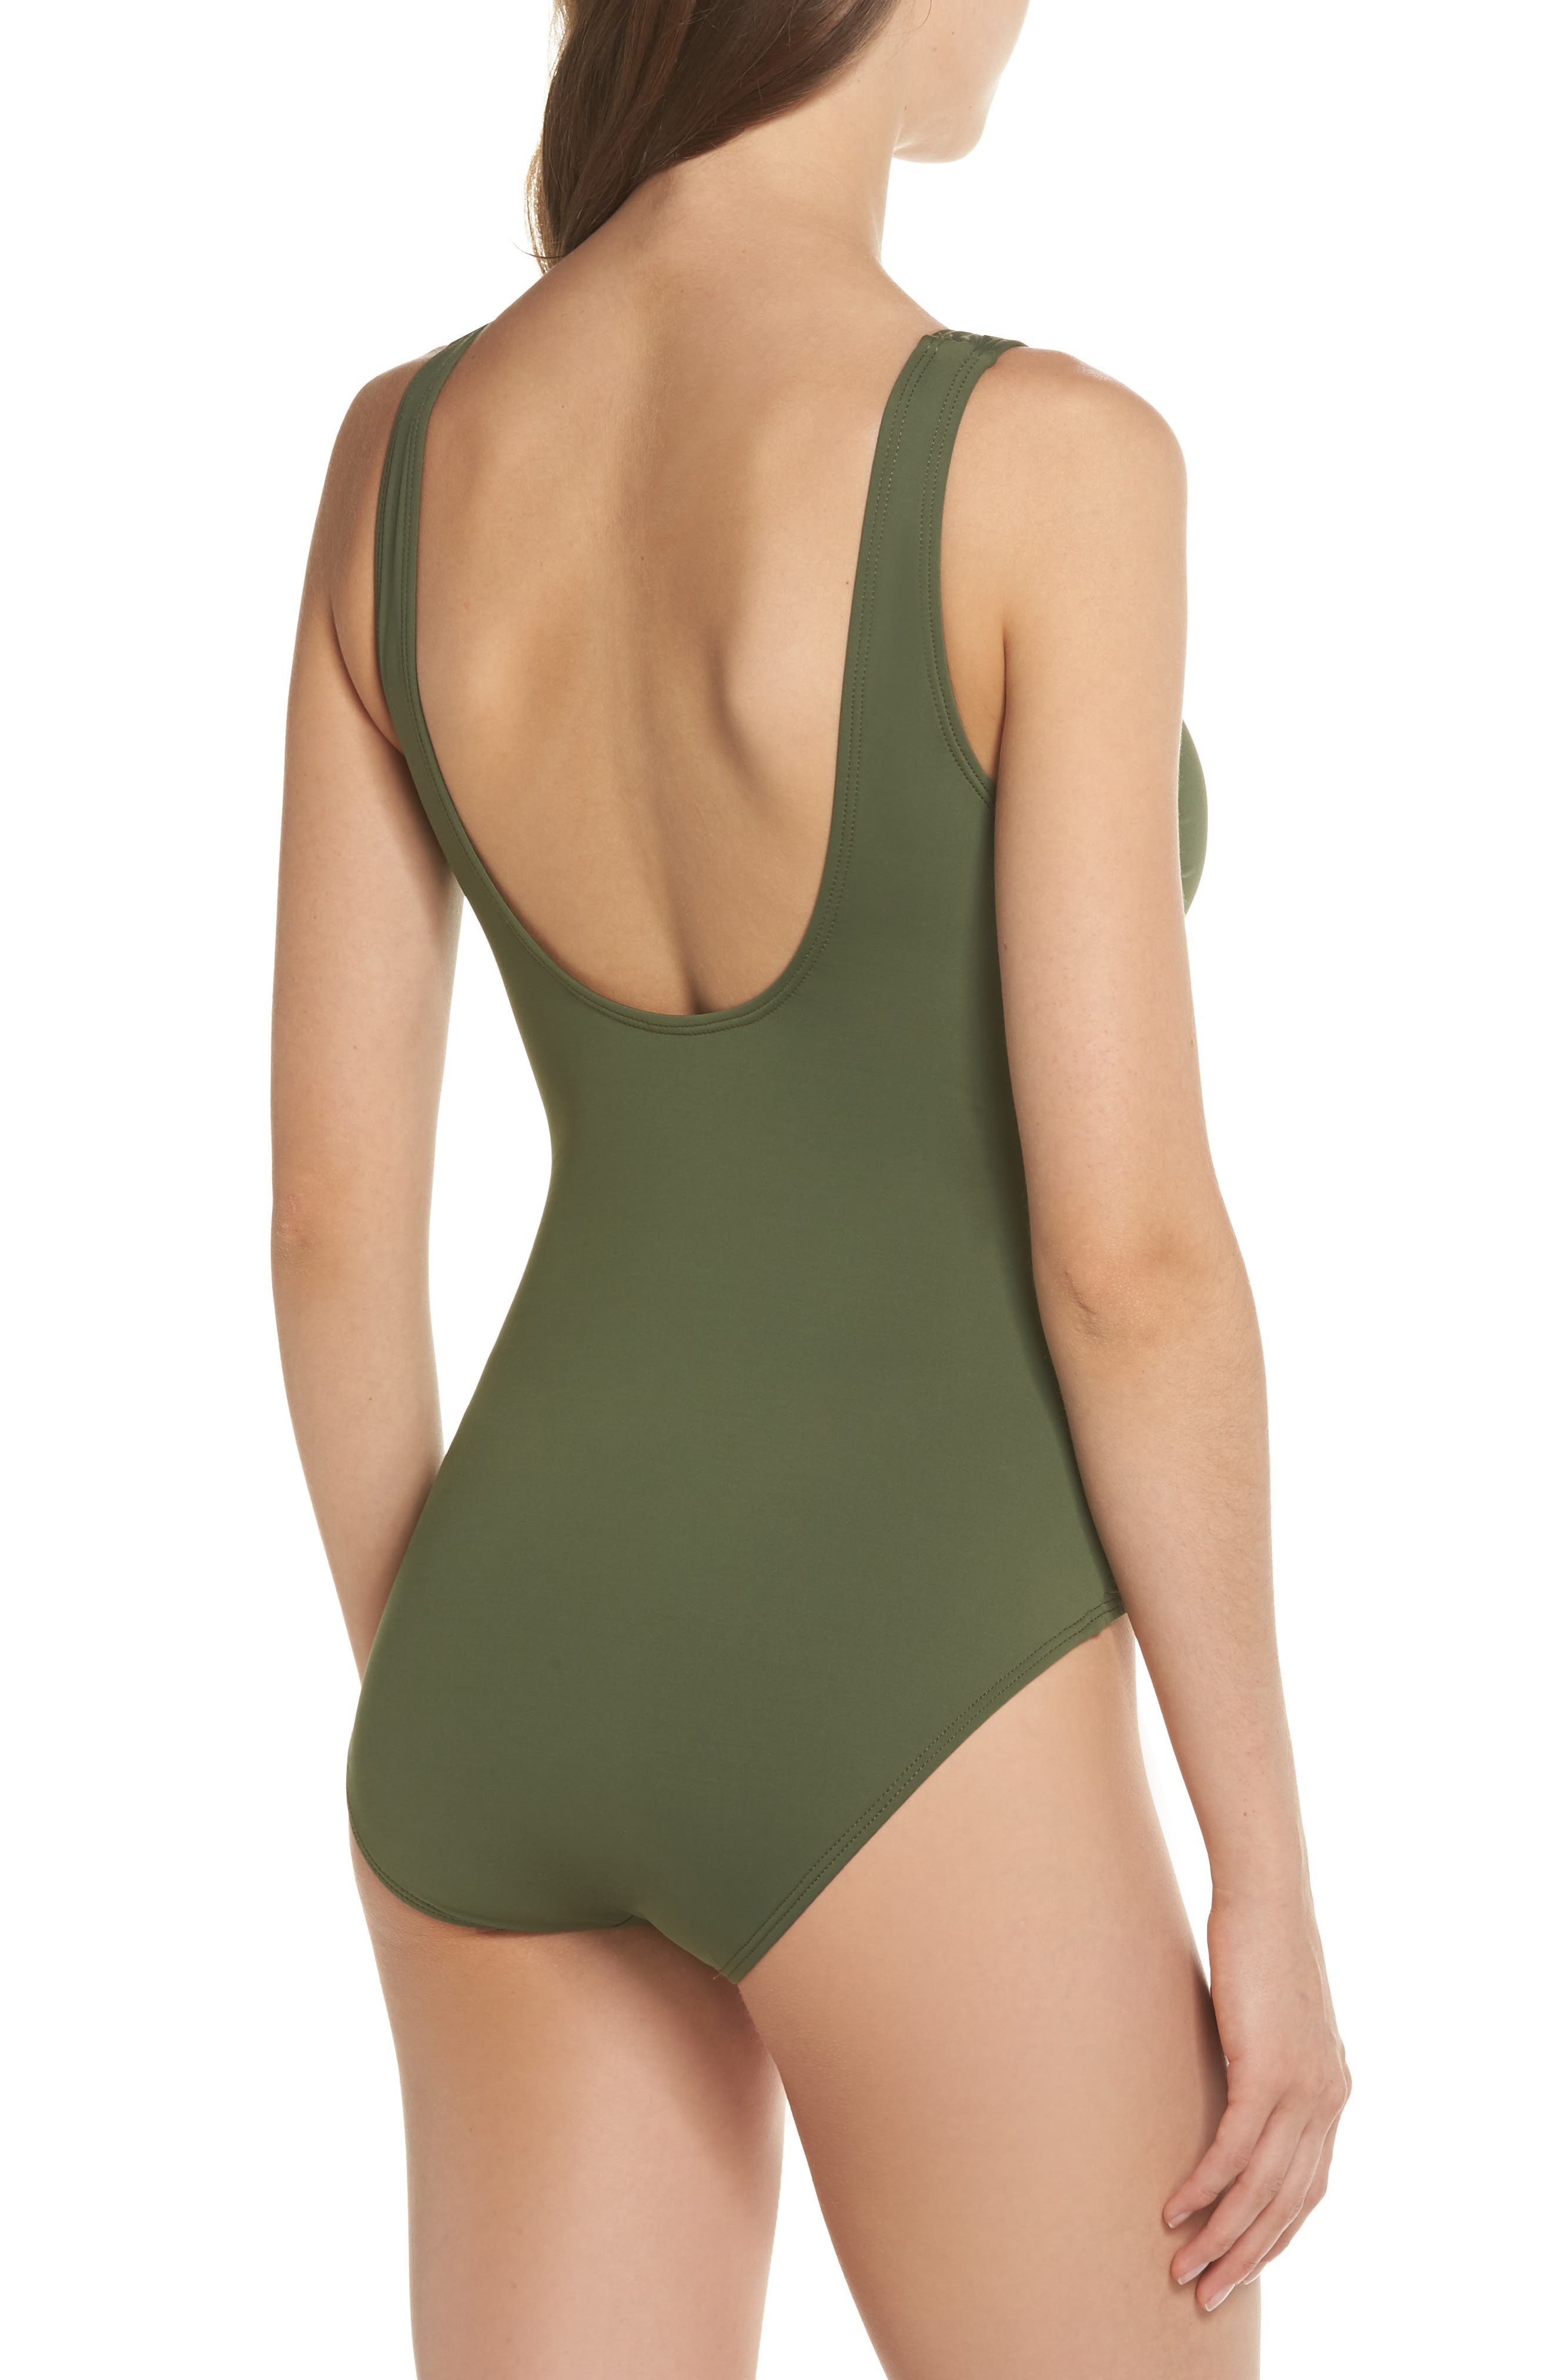 TOMMY BAHAMA,                             Pearl One-Piece Swimsuit,                             Alternate thumbnail 2, color,                             DARK TEA LEAF